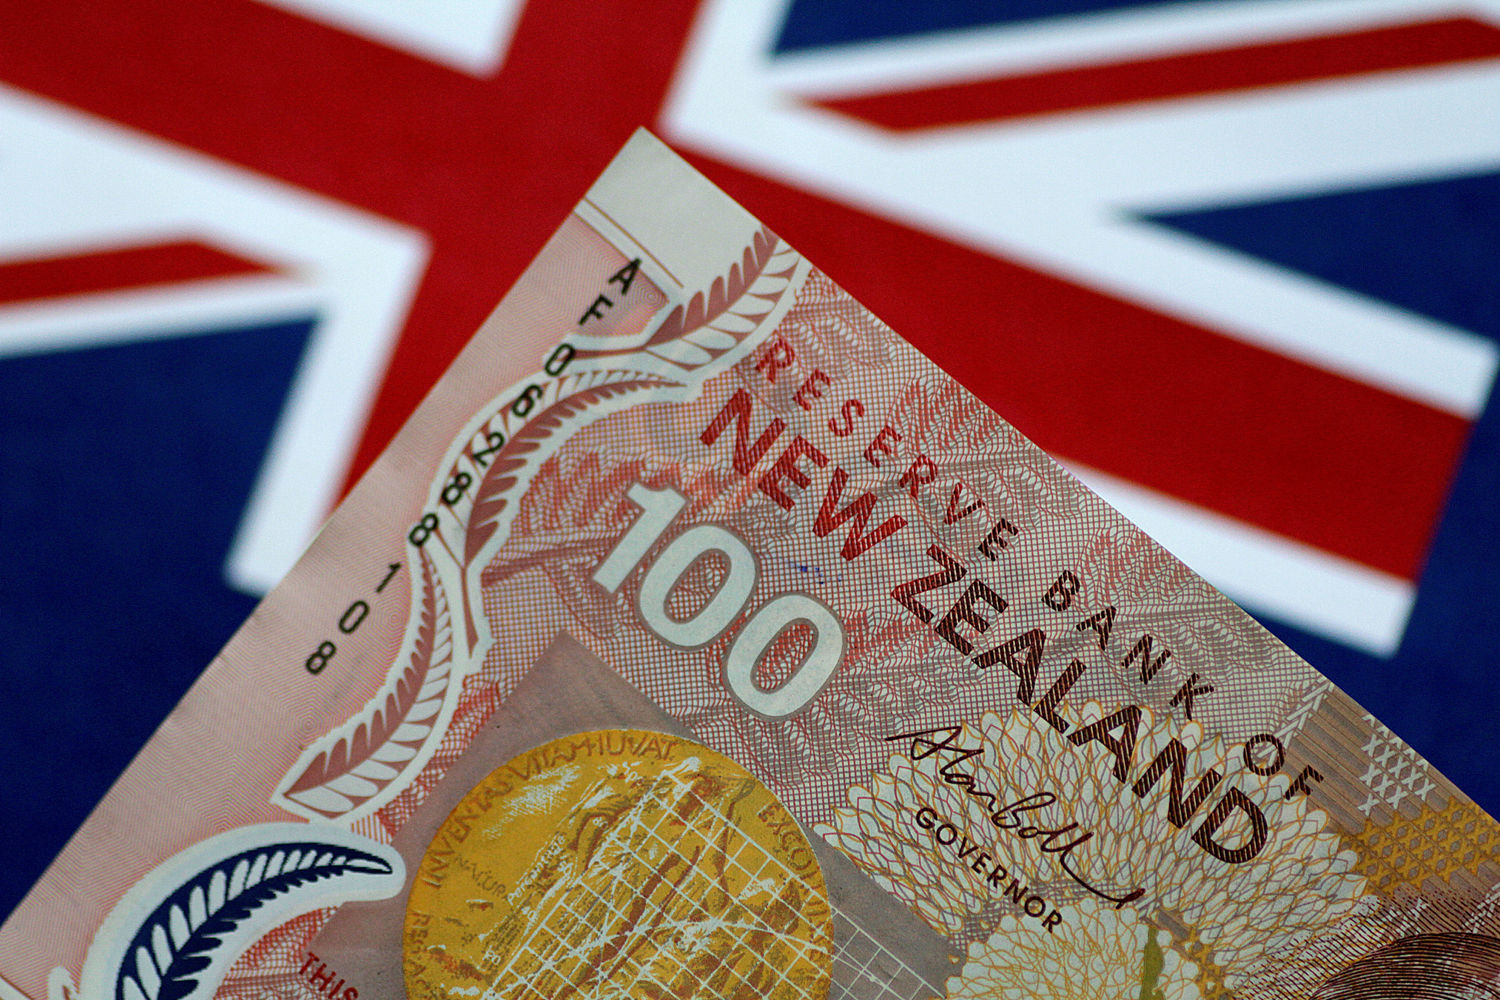 New Zealand GDP shrinks more than expected in 4th quarter